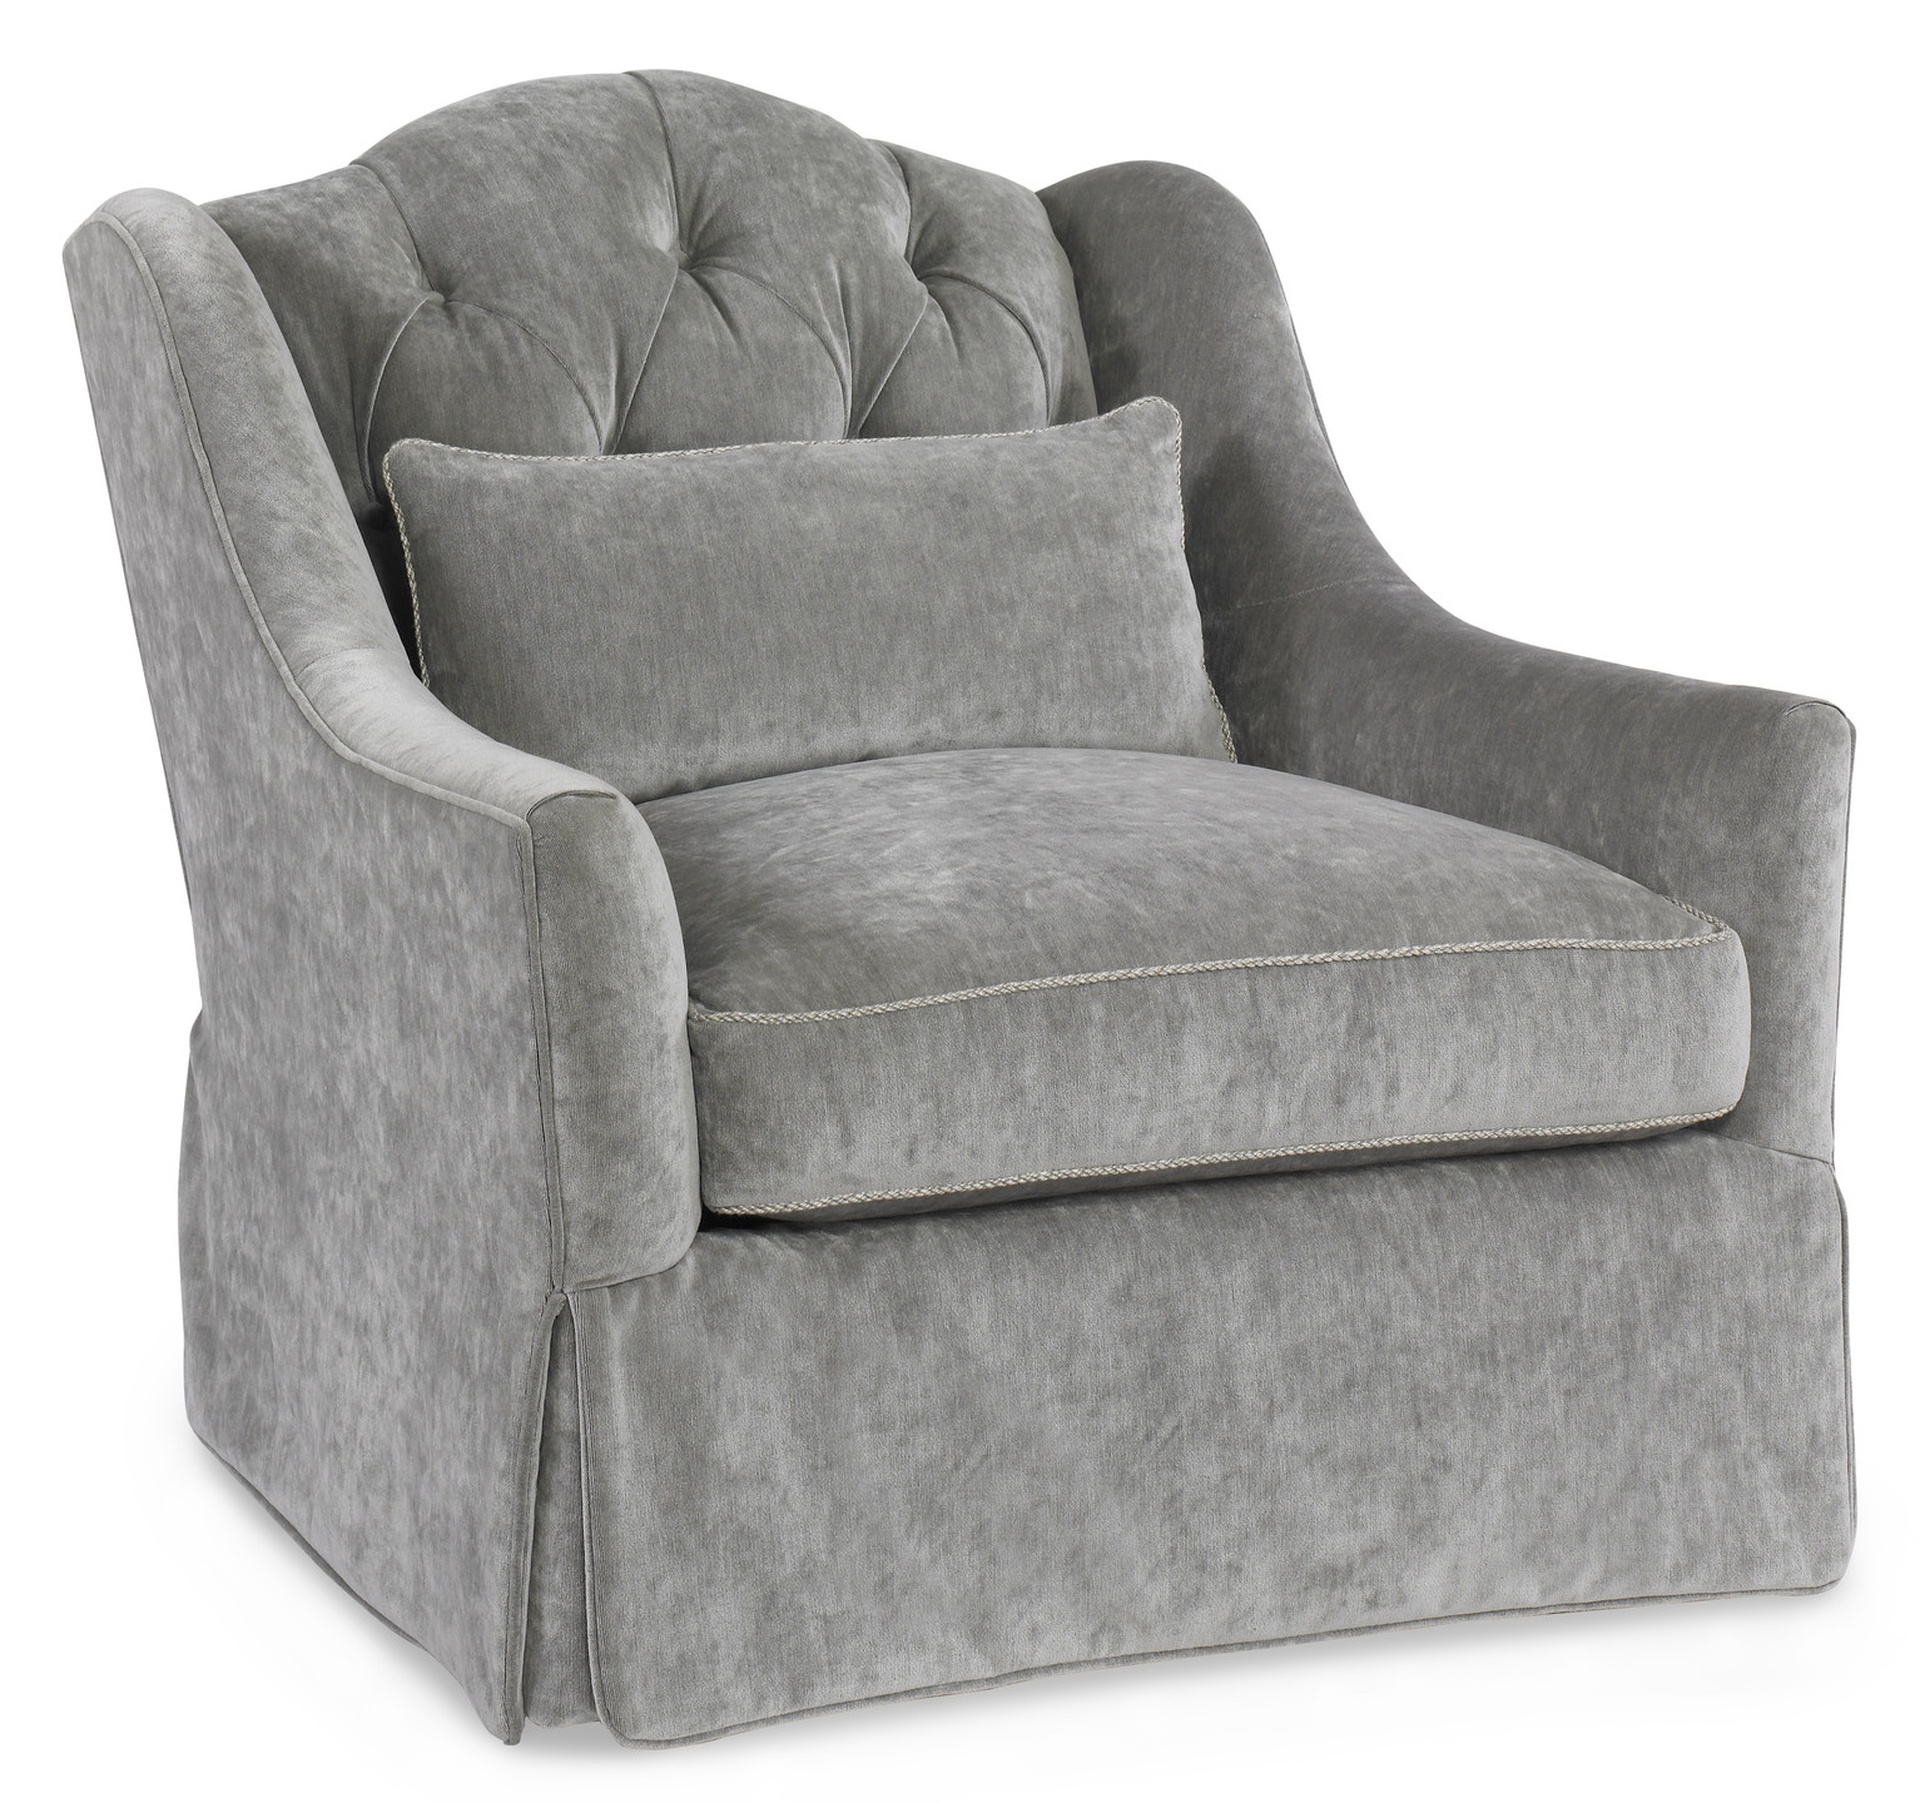 Bordeaux Tufted Chair Ej Victor